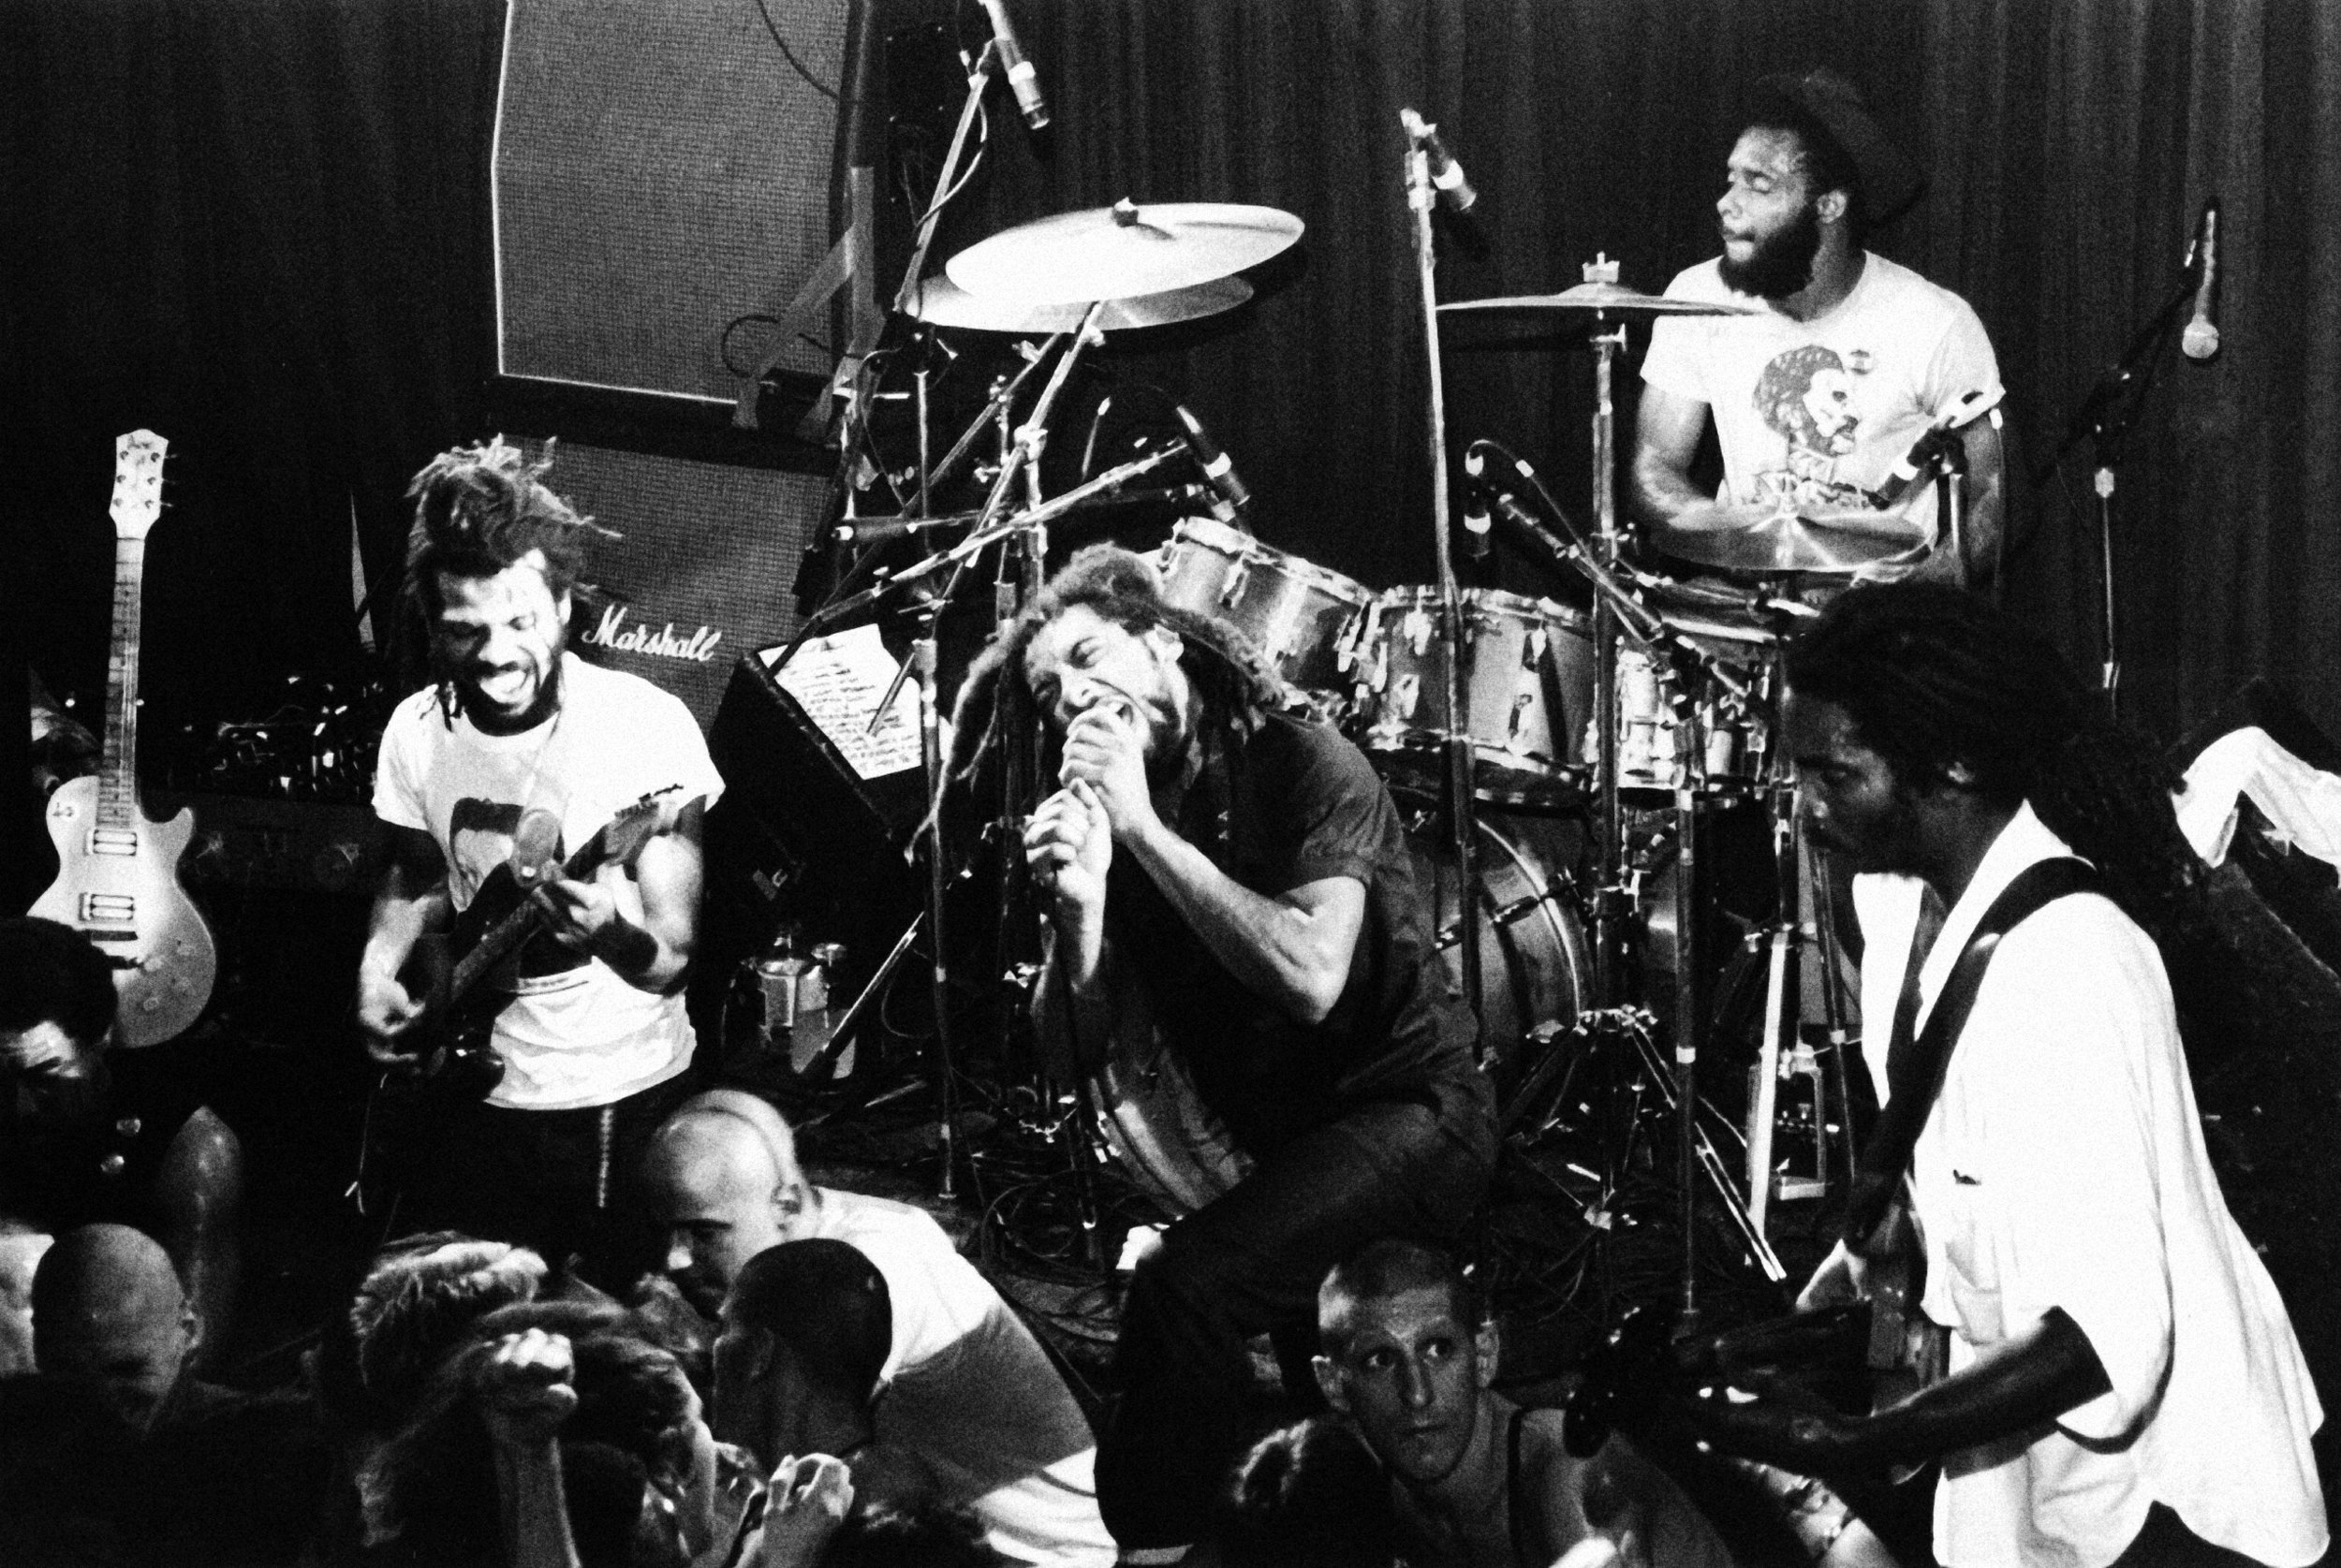 Bad Brains, performing live at Rock Hotel, in New York City